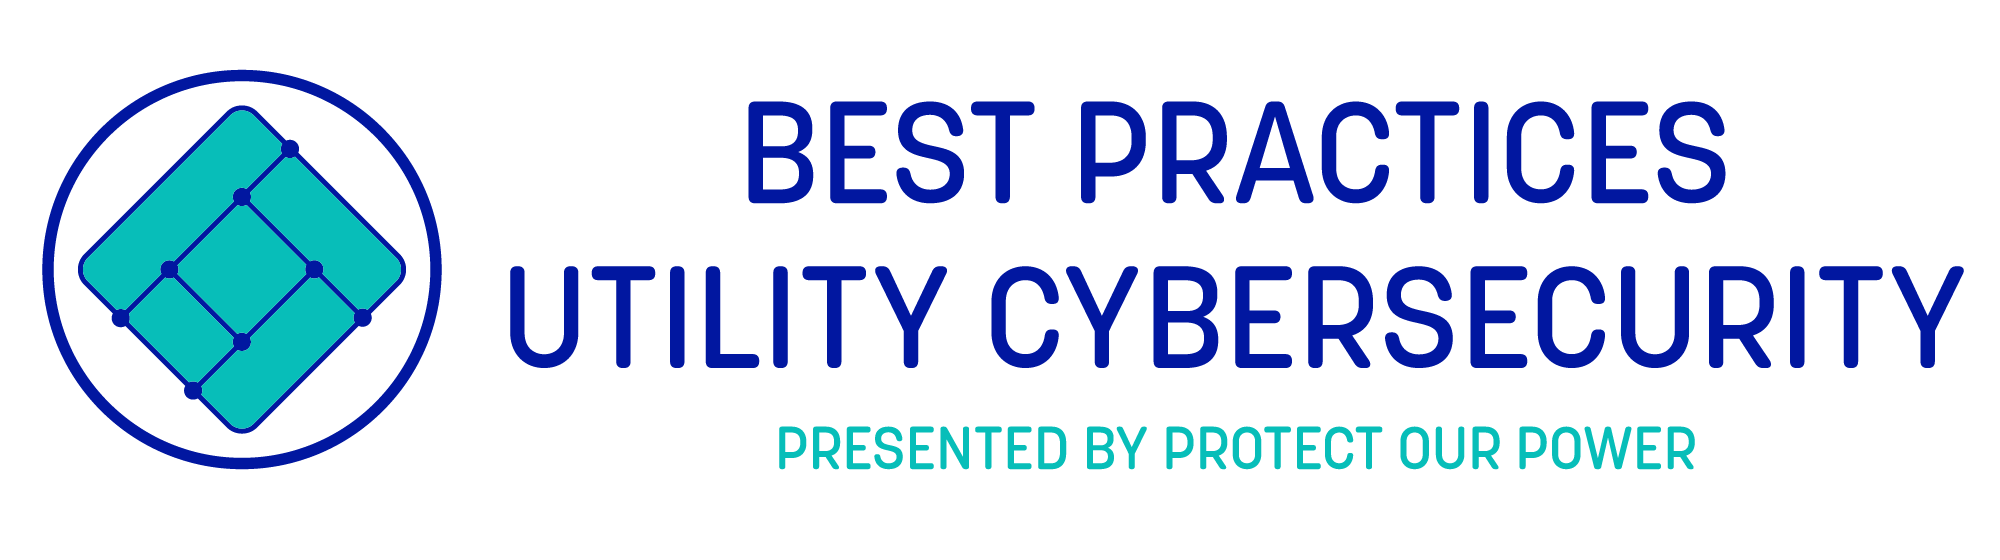 Best-Practices-in-Utility-Cybersecurity-Conference-logo